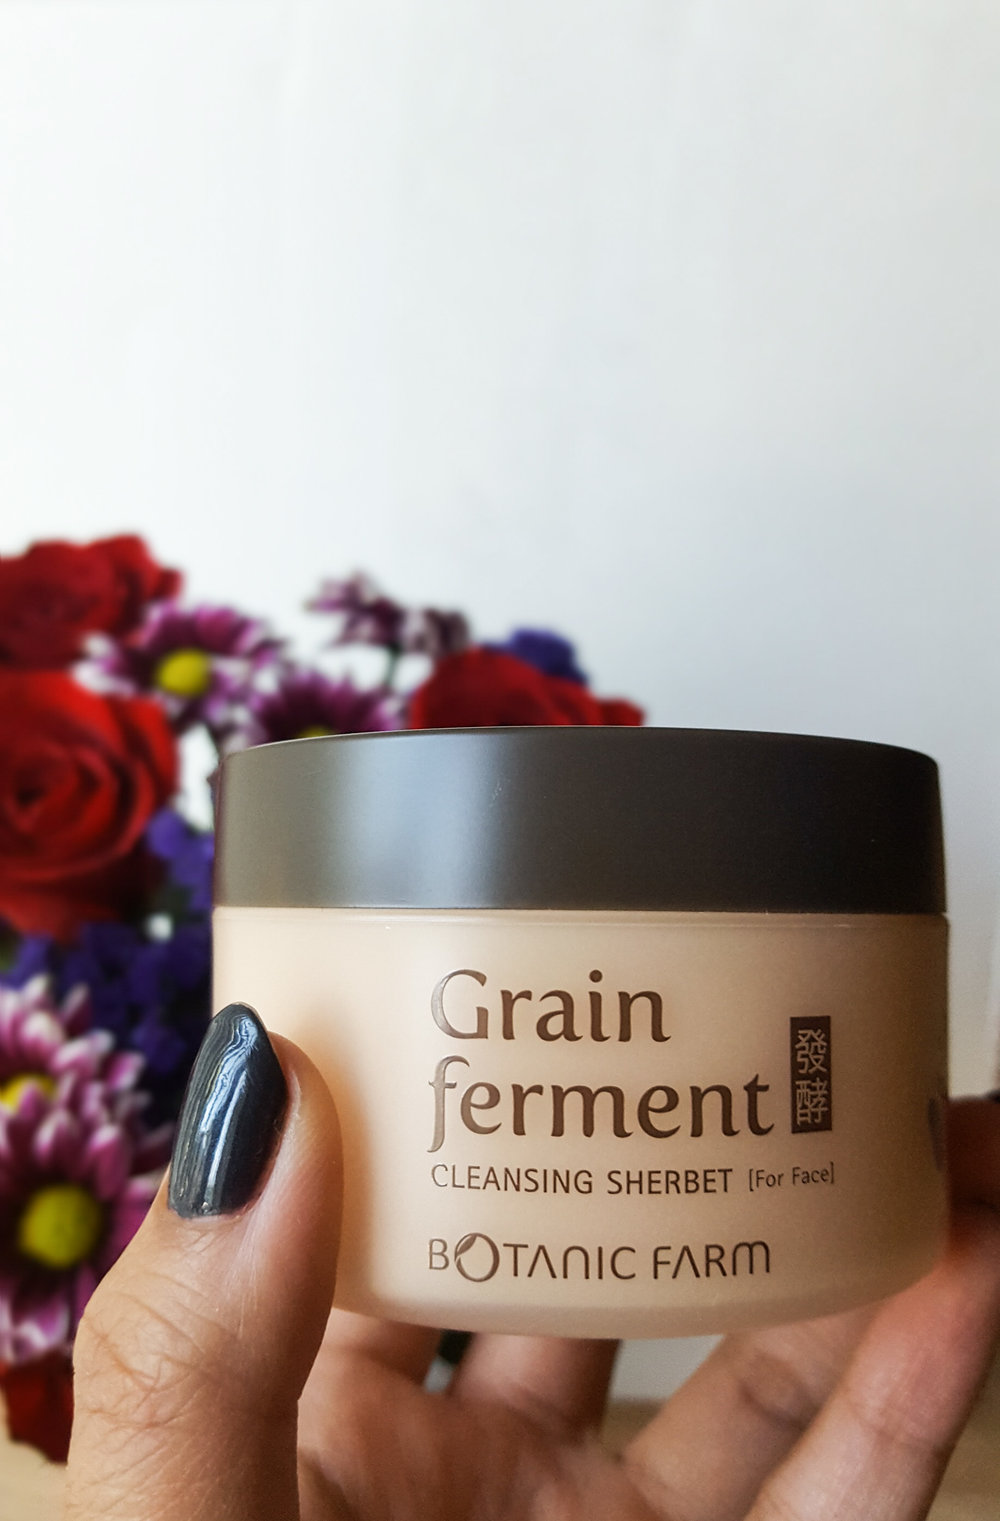 ... Botanic Farm Grain Ferment Cleansing Sherbet. I Have Been Using It  Every Time I Wear Face Makeup (about 3 To 4 Times A Week); I Donu0027t Use It  On My Eye ...